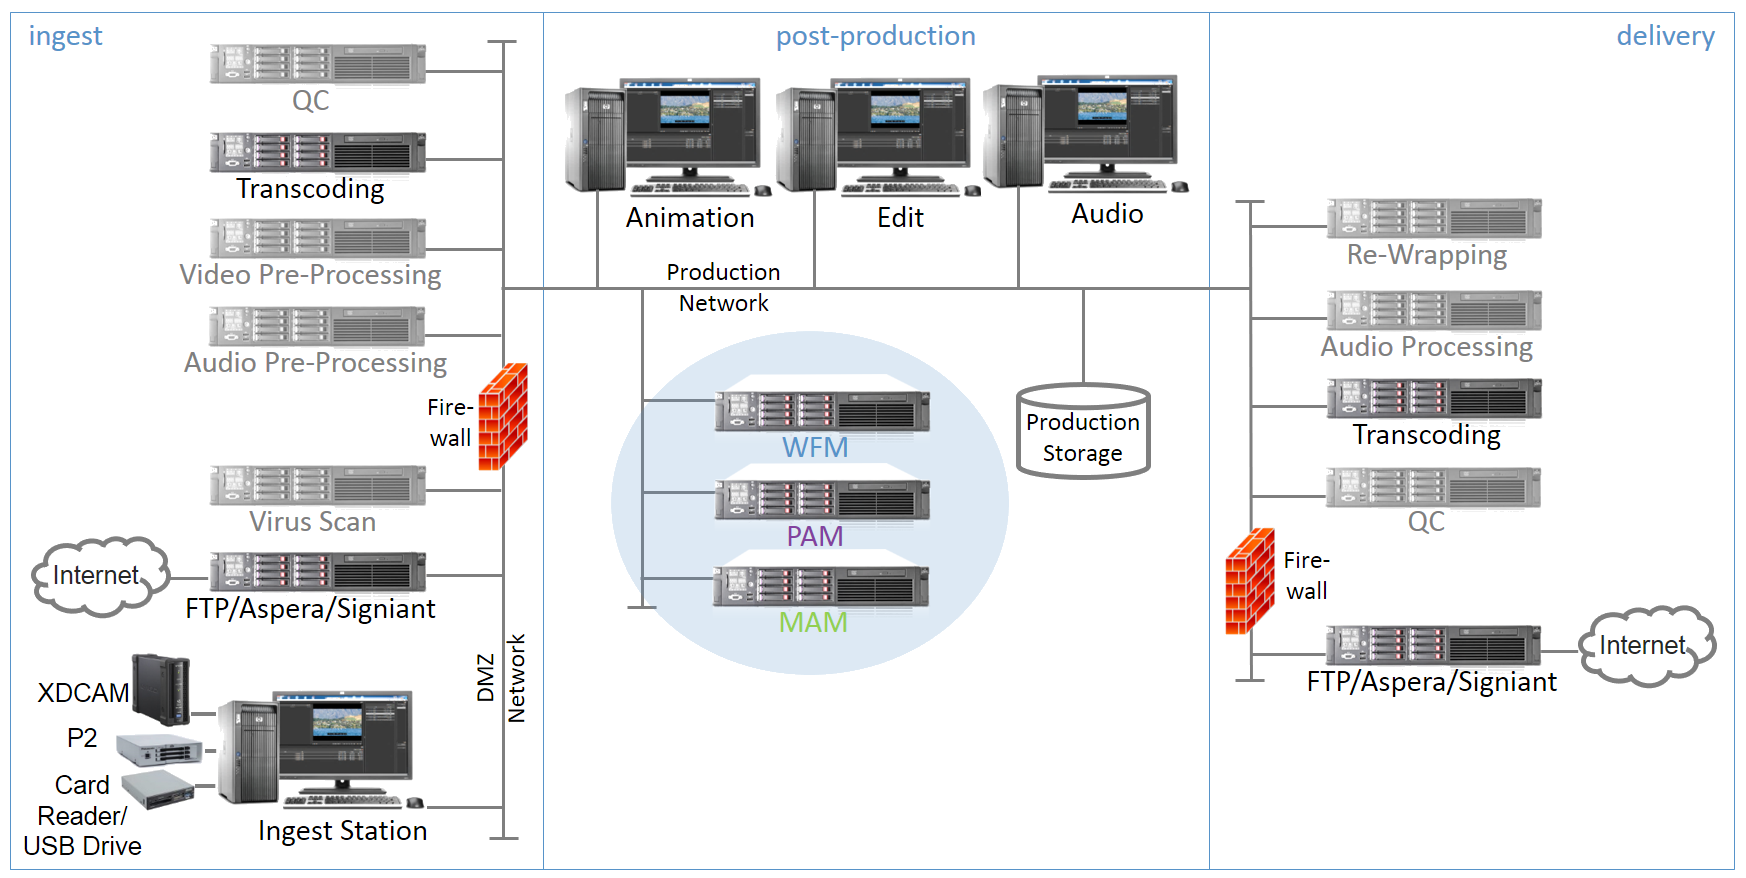 Post Production Solution Network Architecture